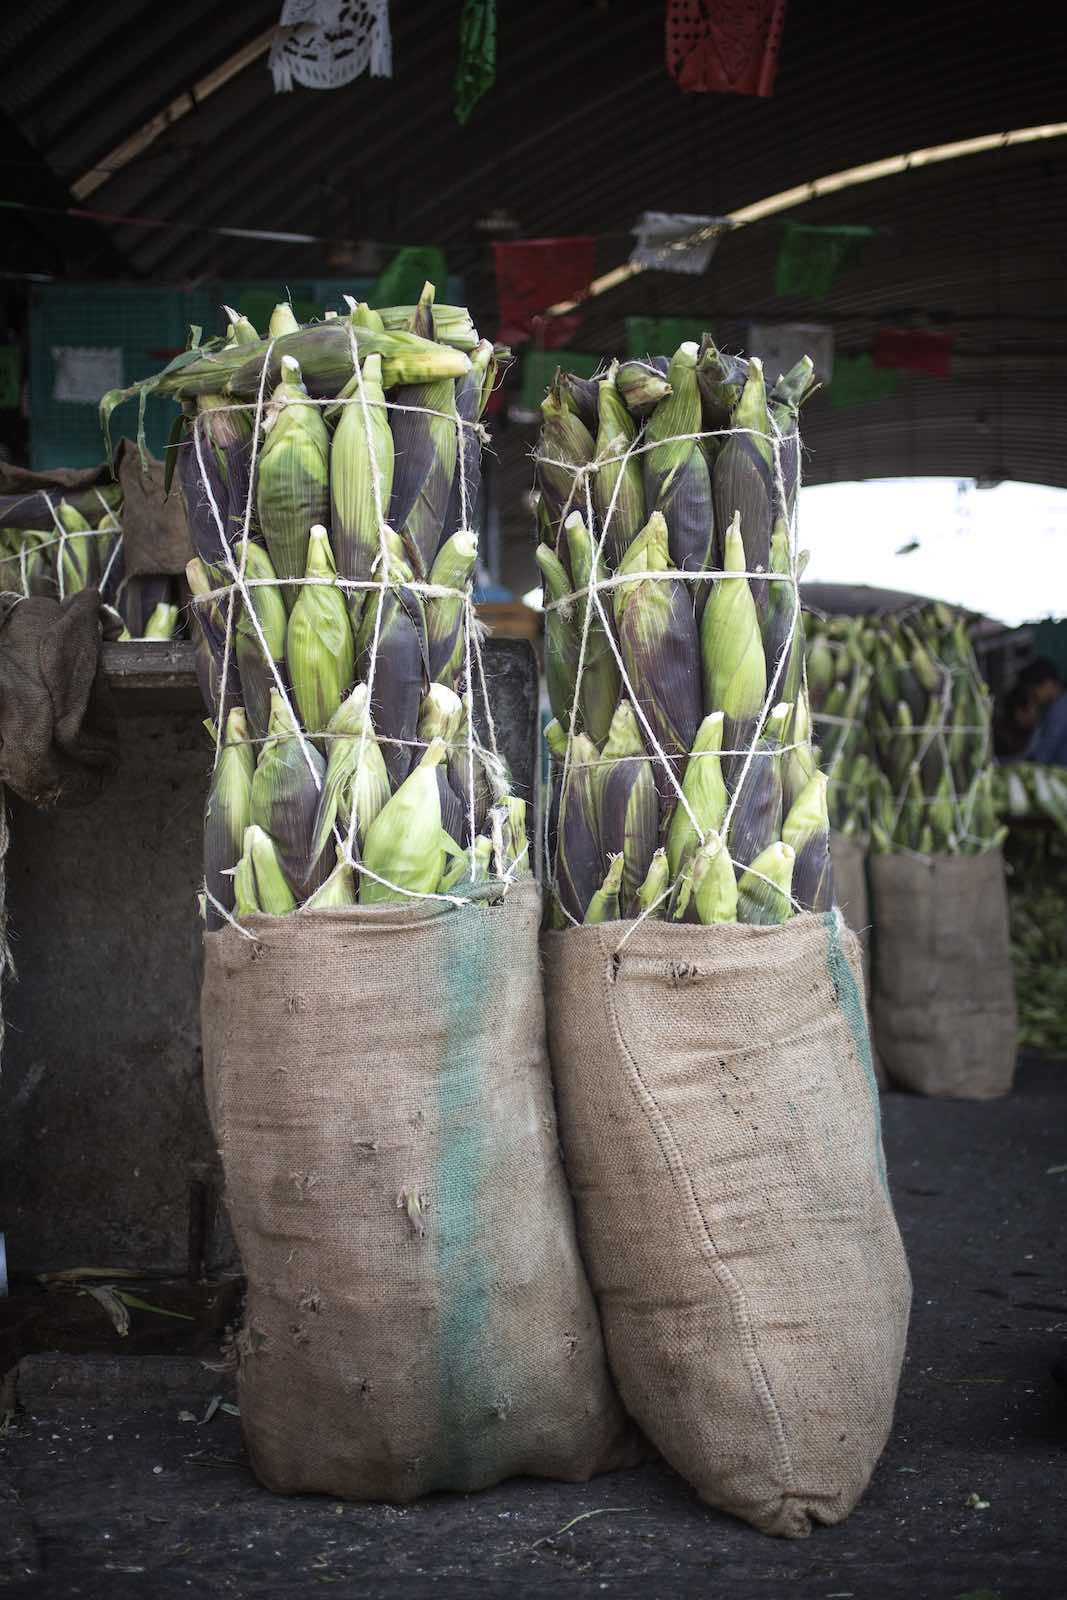 Jody Horton Photography - Ears of corn tied in burlap sacks and placed on the floor of the market.